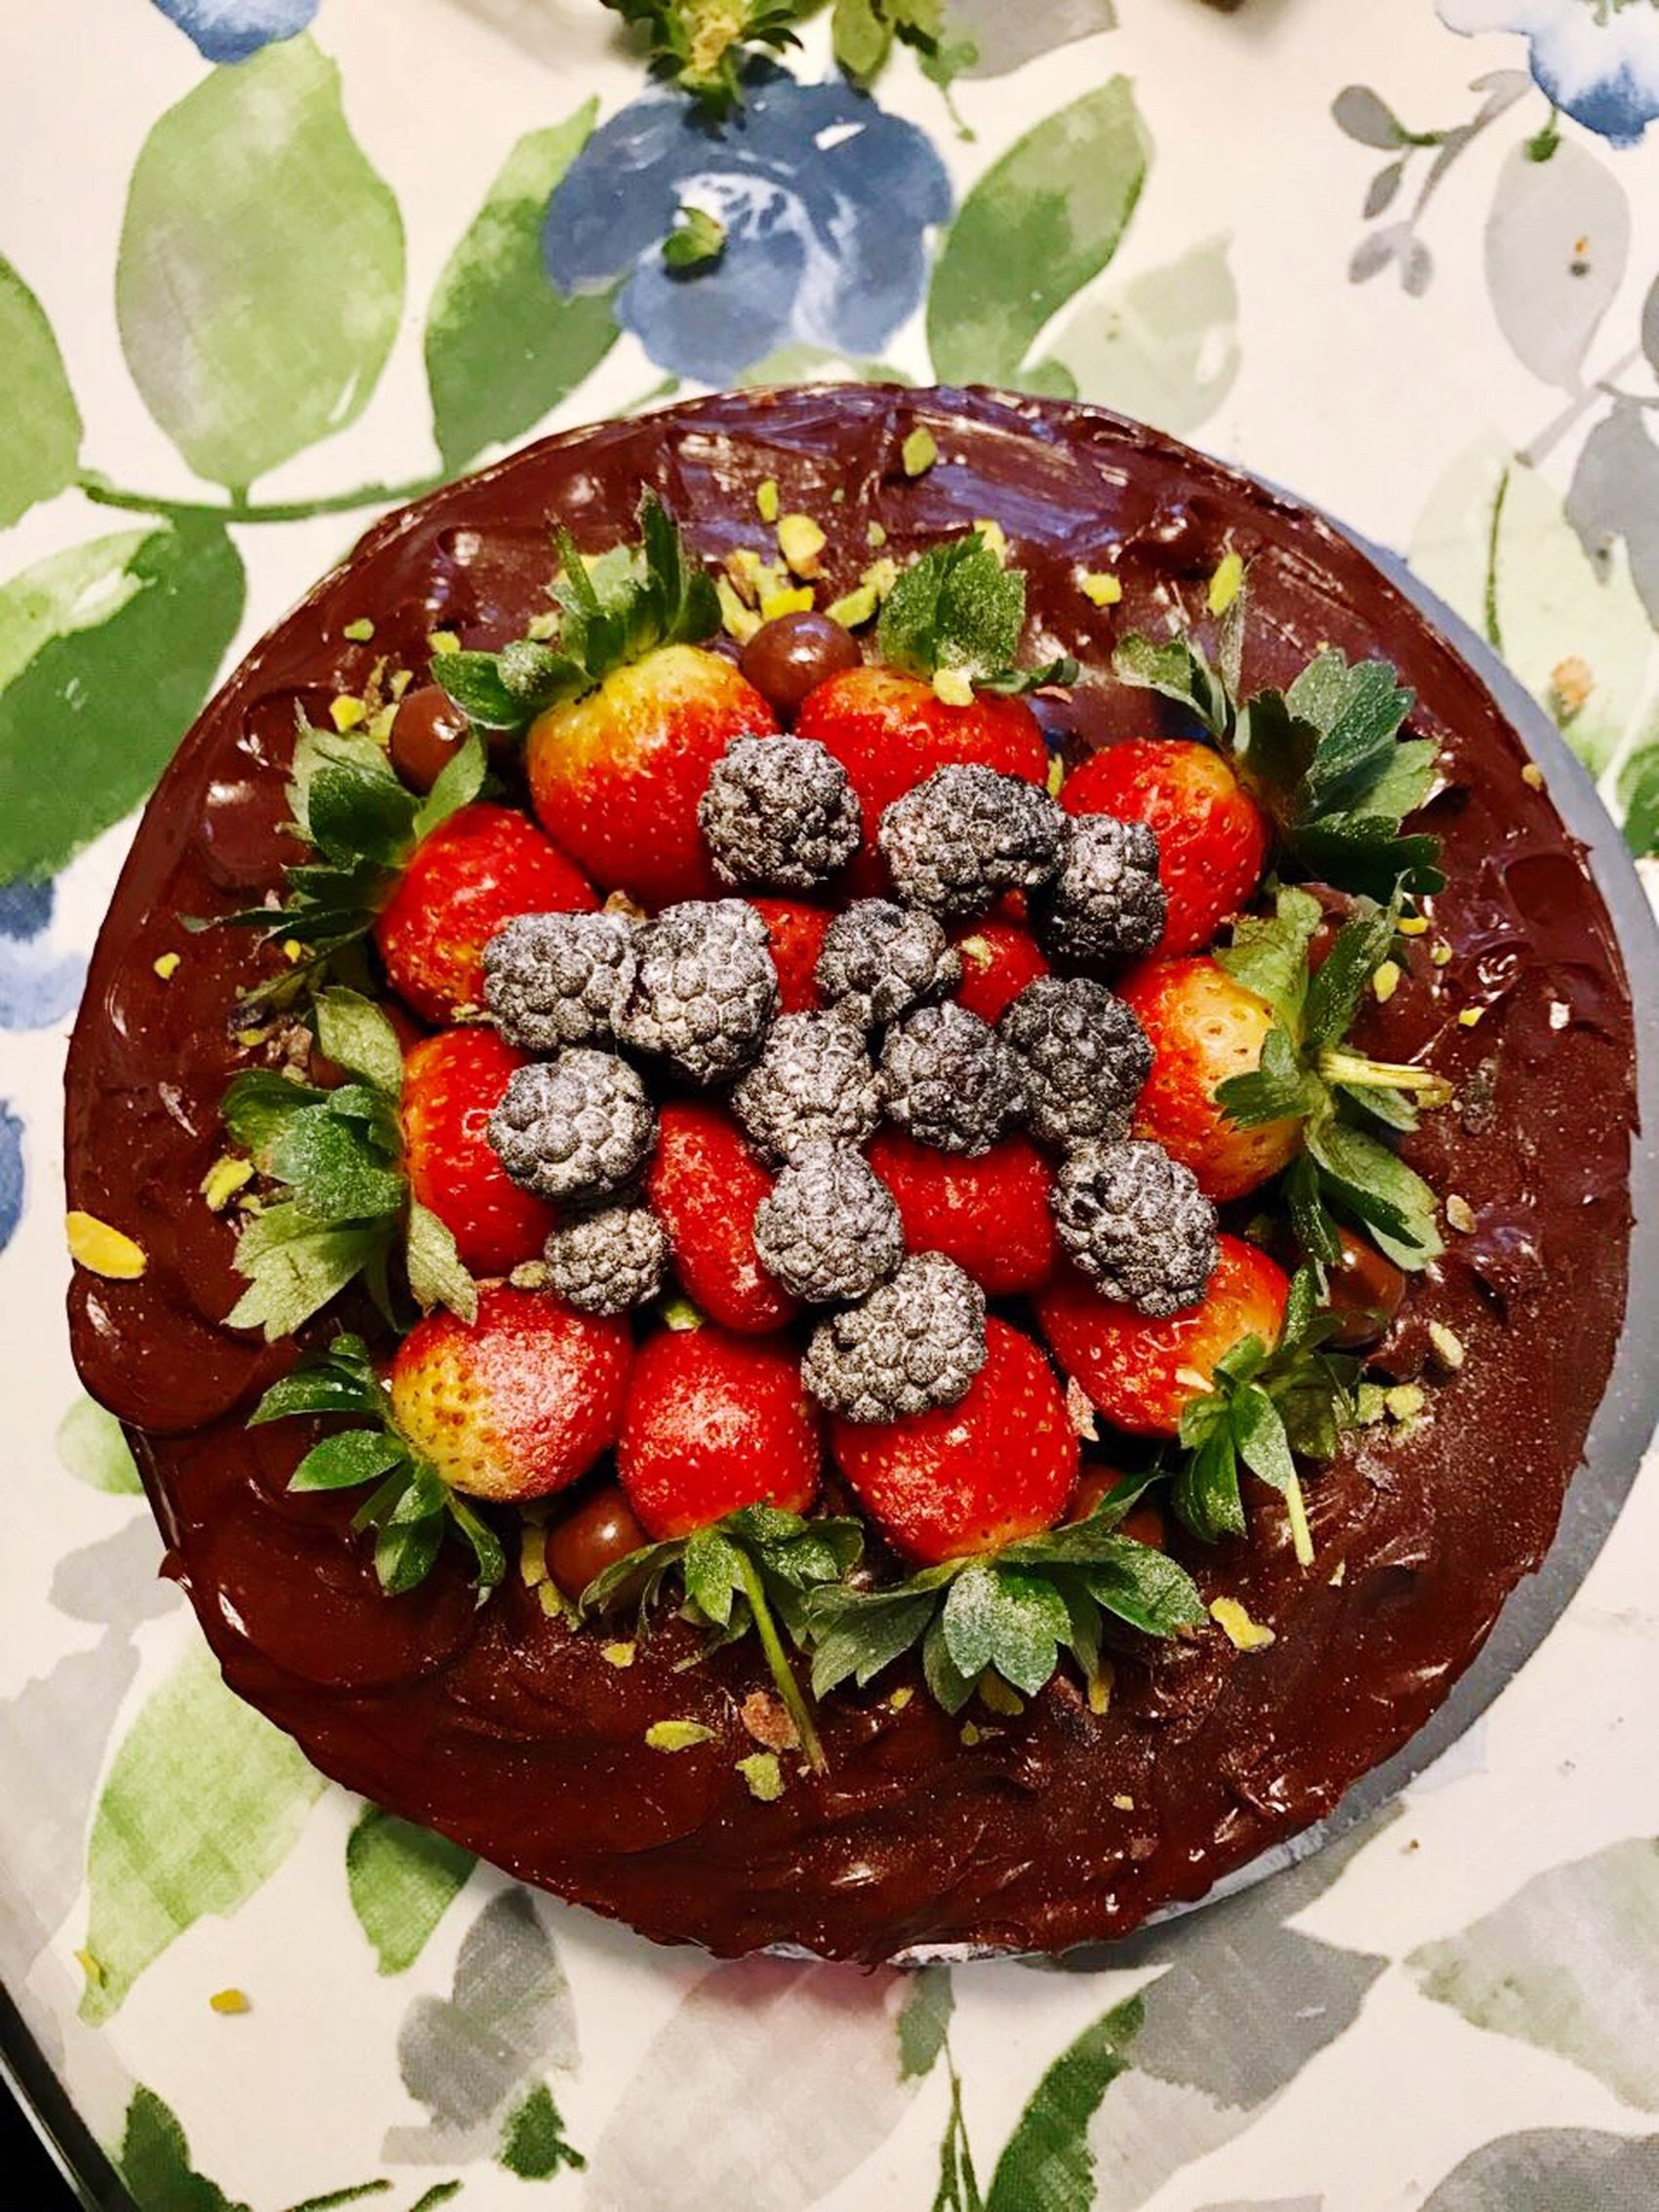 Cake Food Ready-to-eat Dessert Sweet Food Pastry Dough Fruit Freshness Directly Above Food And Drink High Angle View Indulgence Temptation No People Serving Size Indoors  Close-up Day Tart - Dessert Sweet Pie